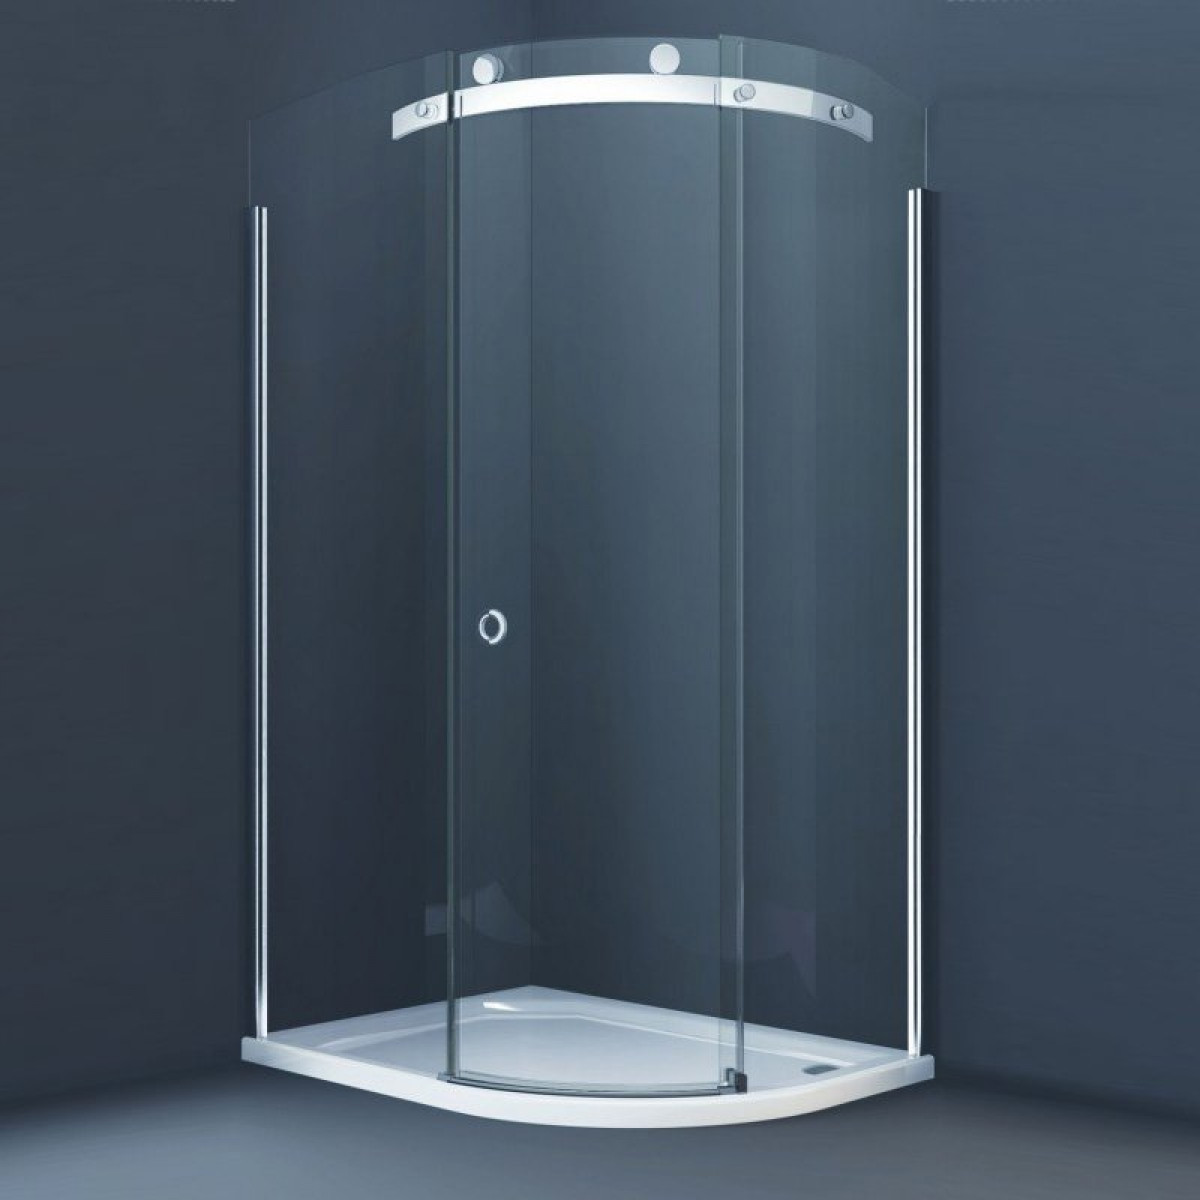 Merlyn 10 Series Offset Quadrant Shower Enclosure 1200 X